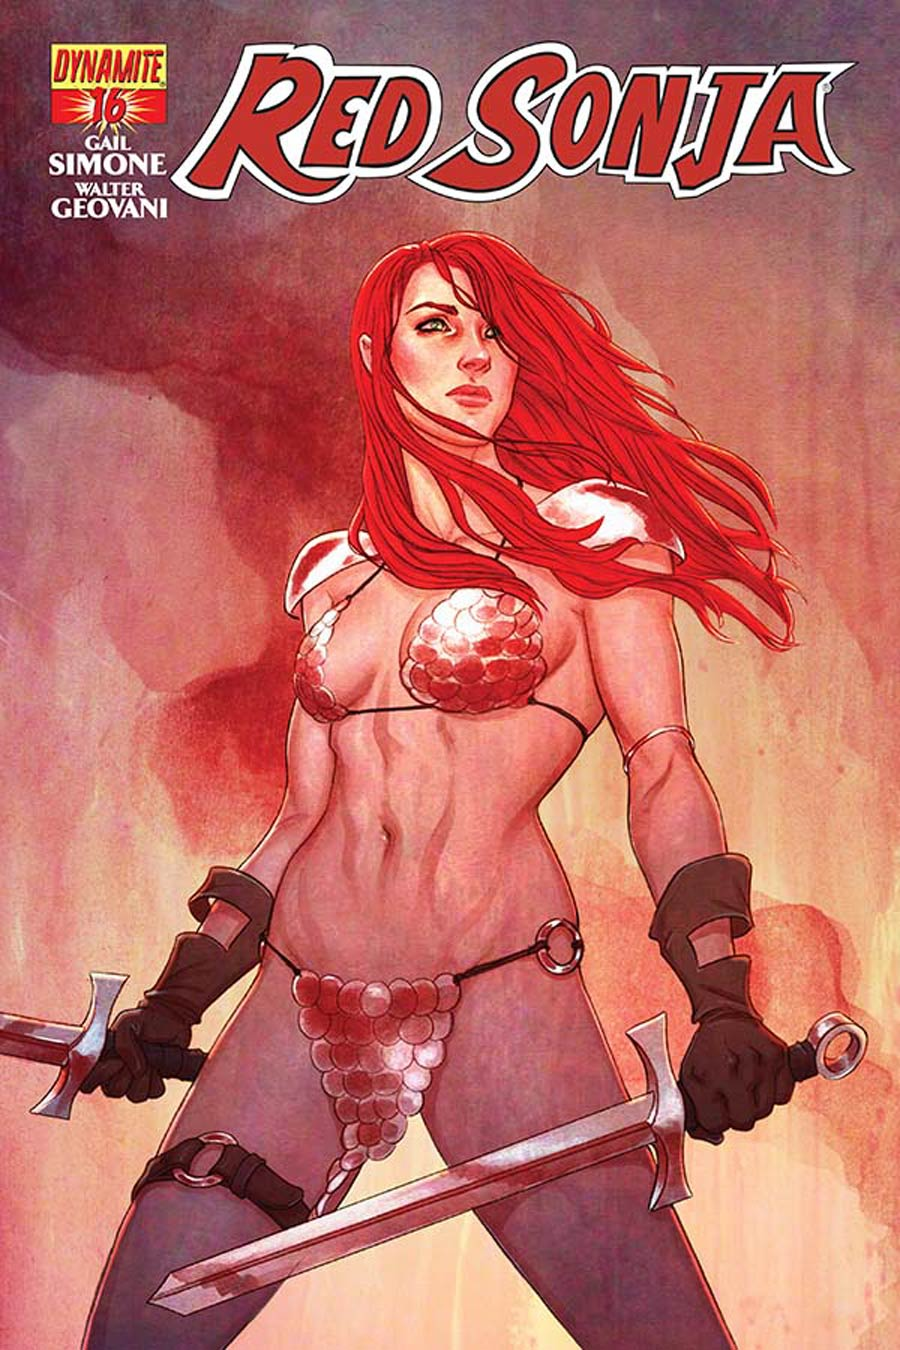 Red Sonja Vol 5 #16 Cover A Regular Jenny Frison Cover